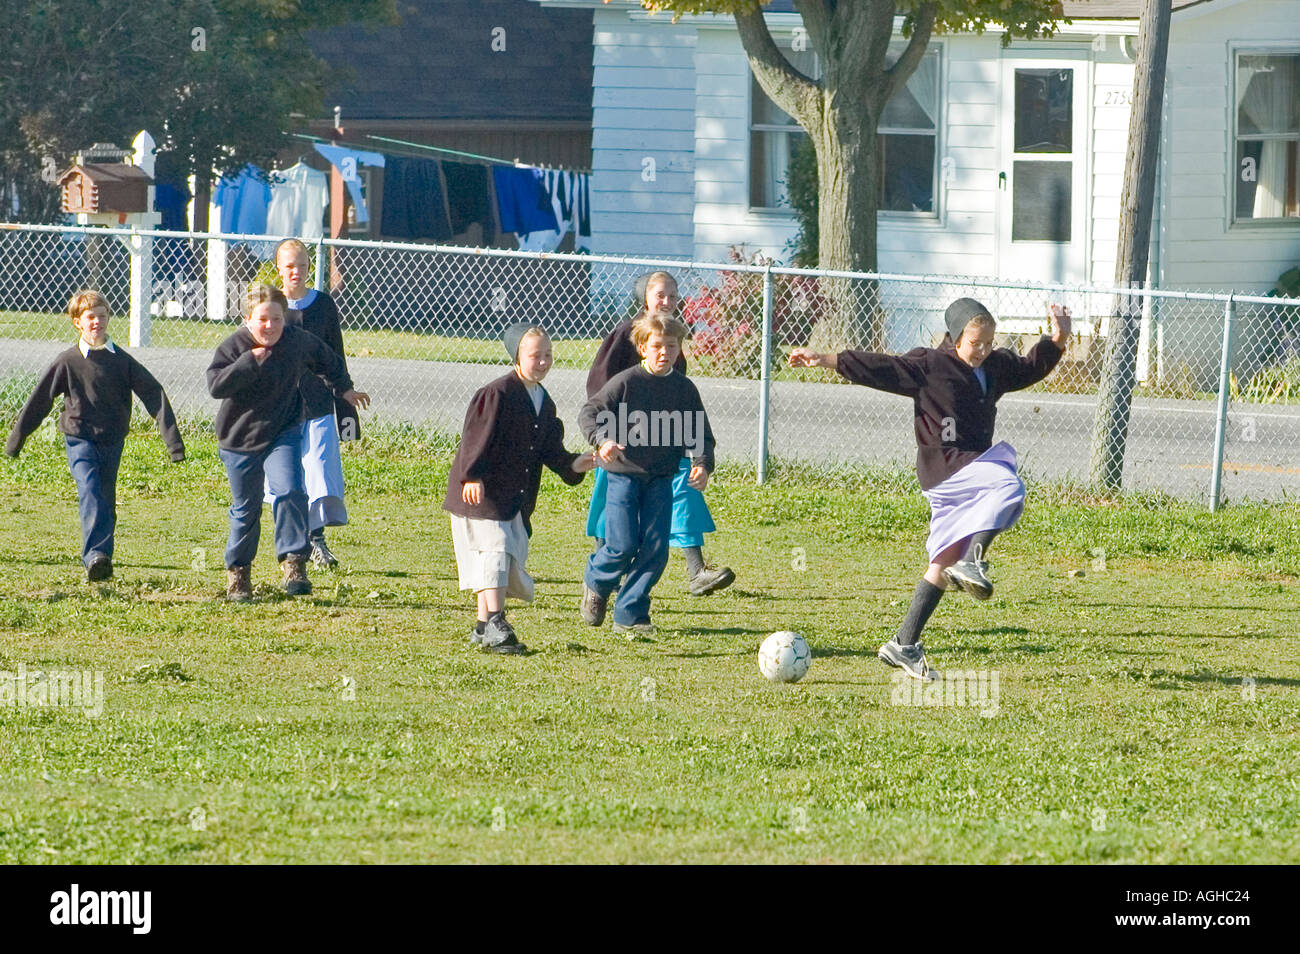 Children play school yard soccer at recess Amish life in Millersburg and Sugar Creek Holms County Ohio - Stock Image